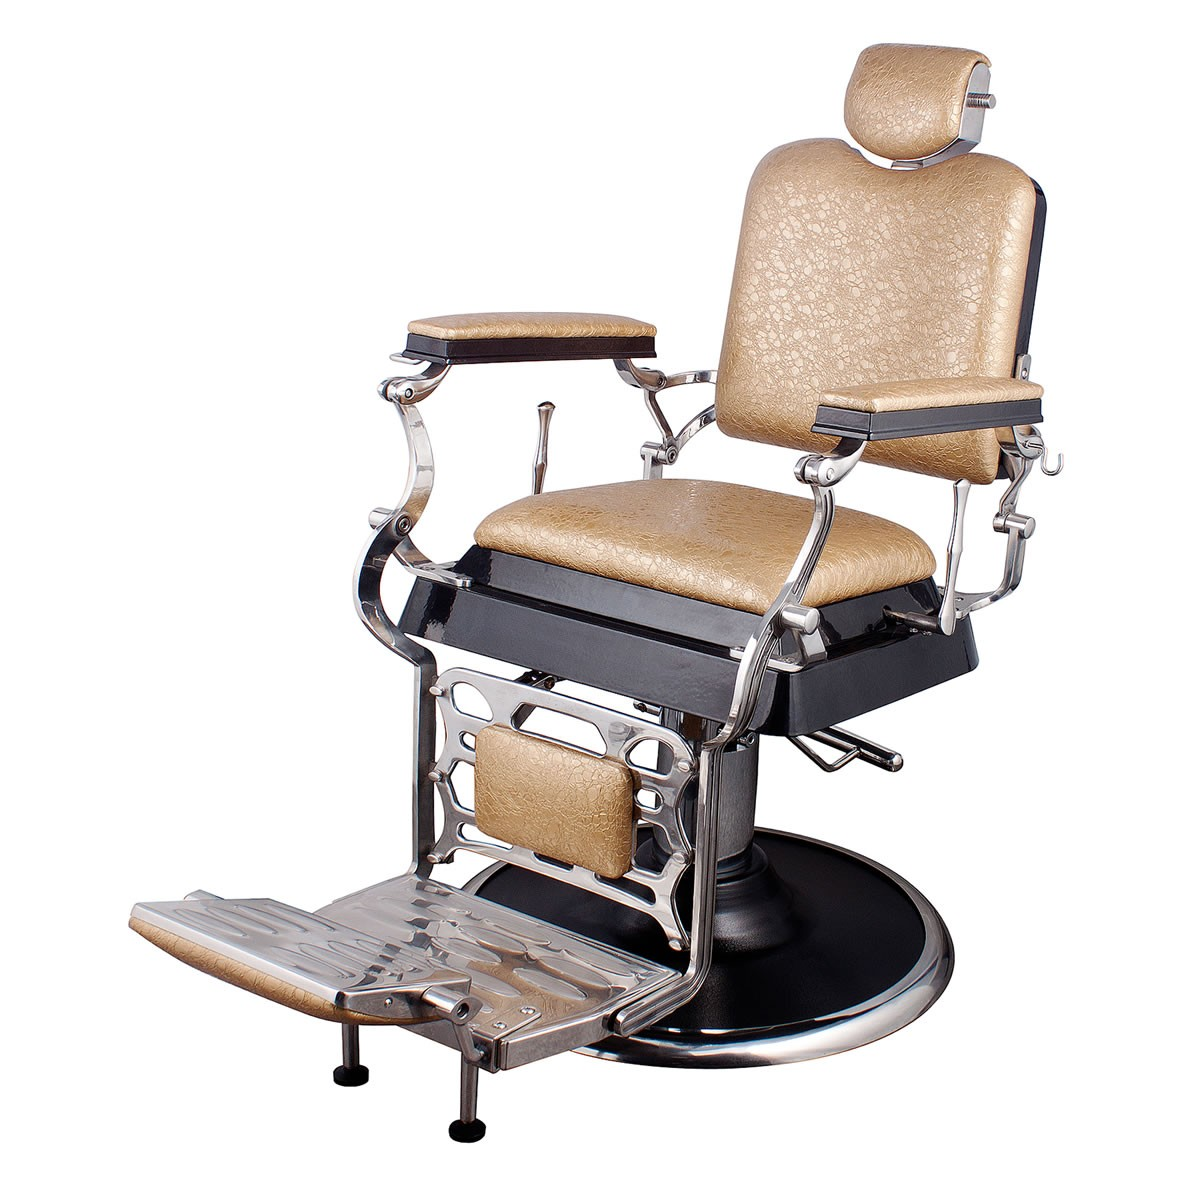 Chairs Equipment.   Luxury Gallery Of Koken Barber Chair. Incredible Koken  Barber Chair  . Antique Chair Parts ...